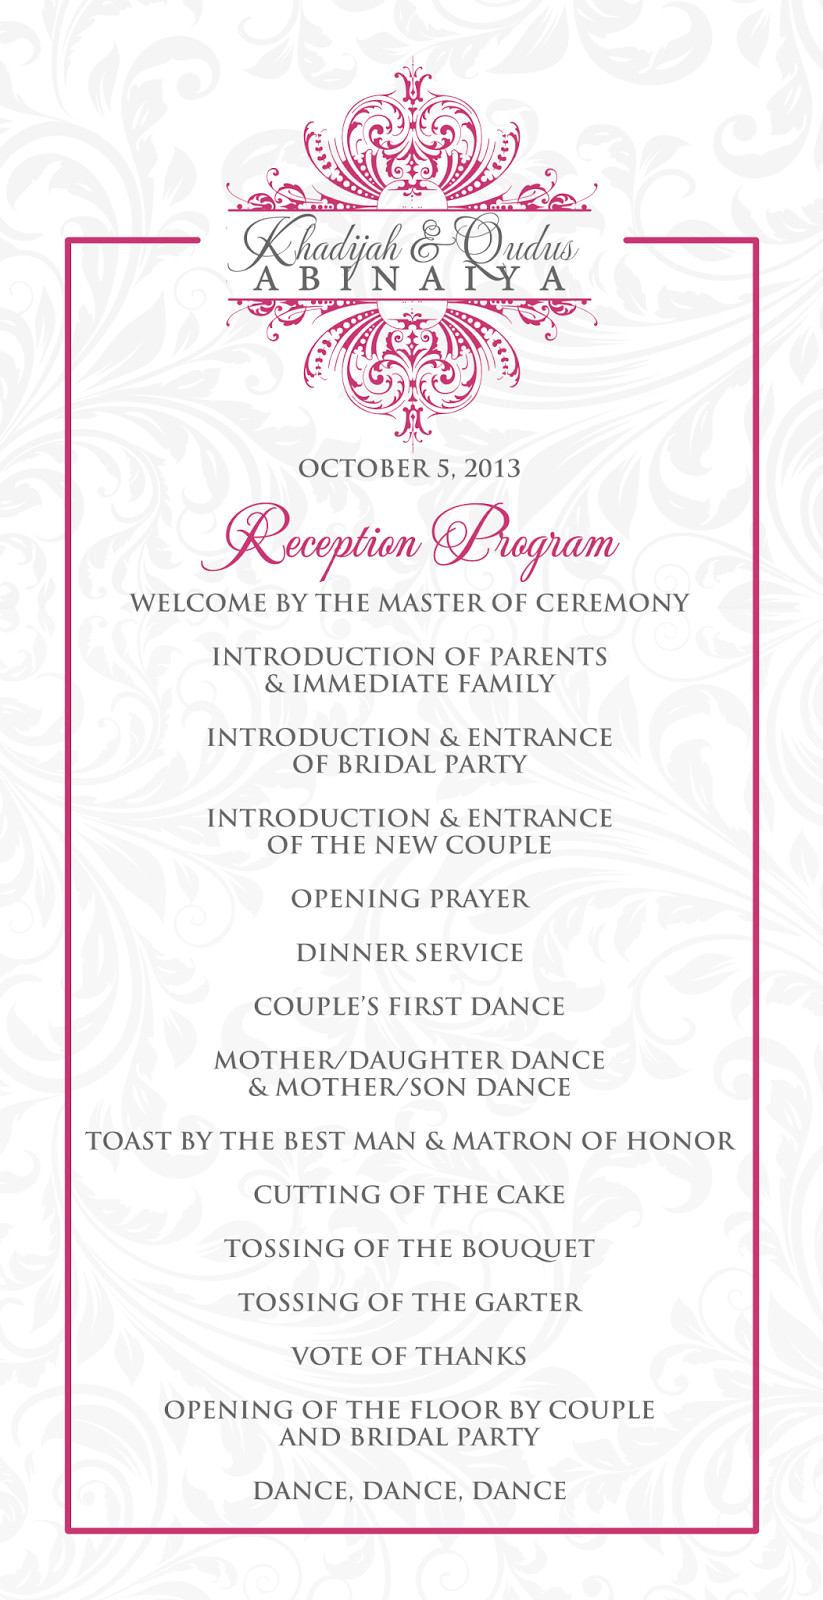 Wedding Reception Programme Template Signatures by Sarah Wedding Stationery for Khadijah